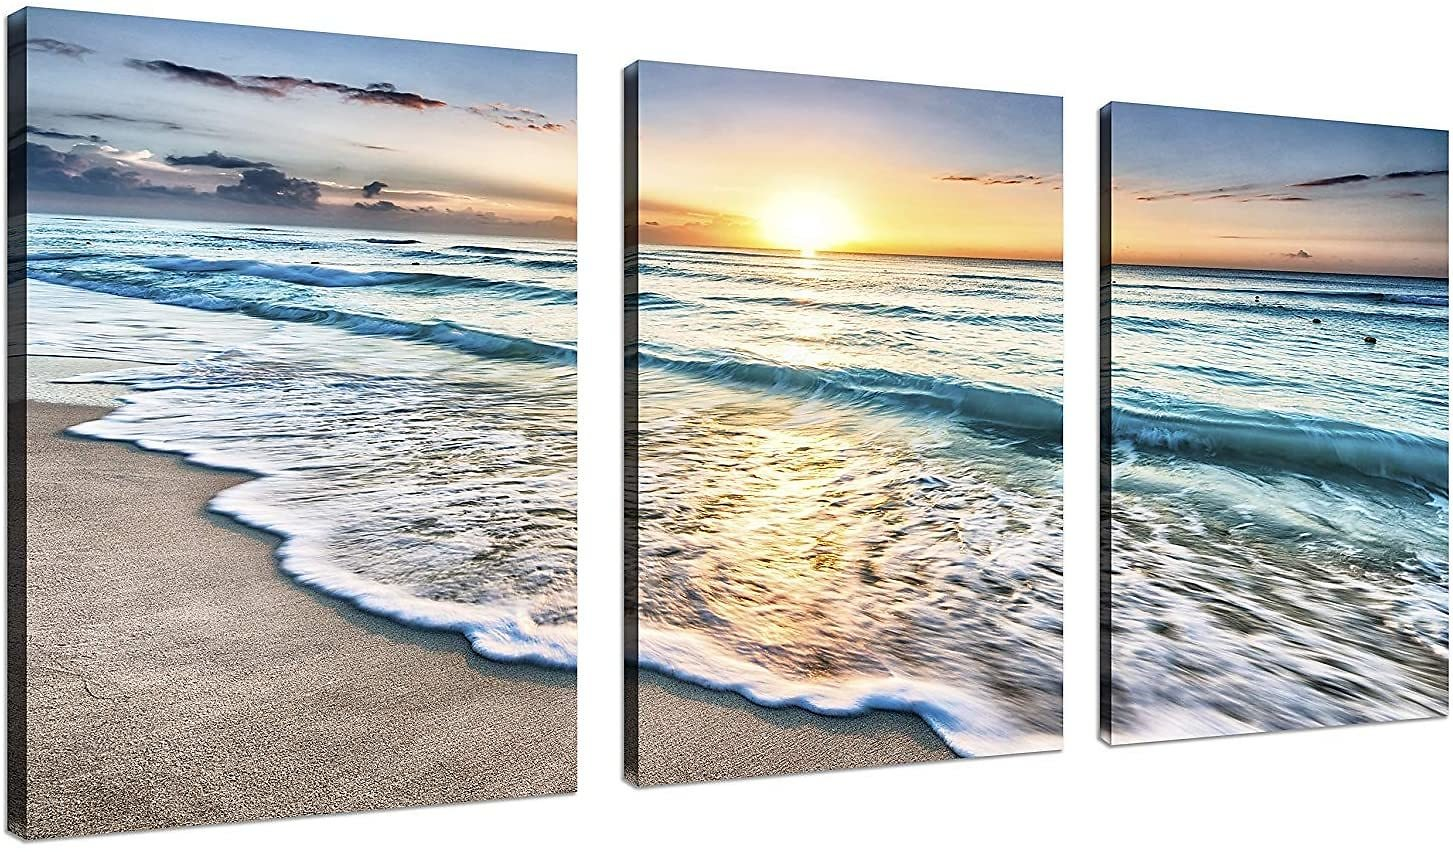 TutuBeer No Framed 3 Panel Canvas Wall Art for Home Decor Blue Sea Sunset White Beach Painting The Picture Print On Canvas Seascape The Pictures for Home Decor Decoration,3pcs/Set